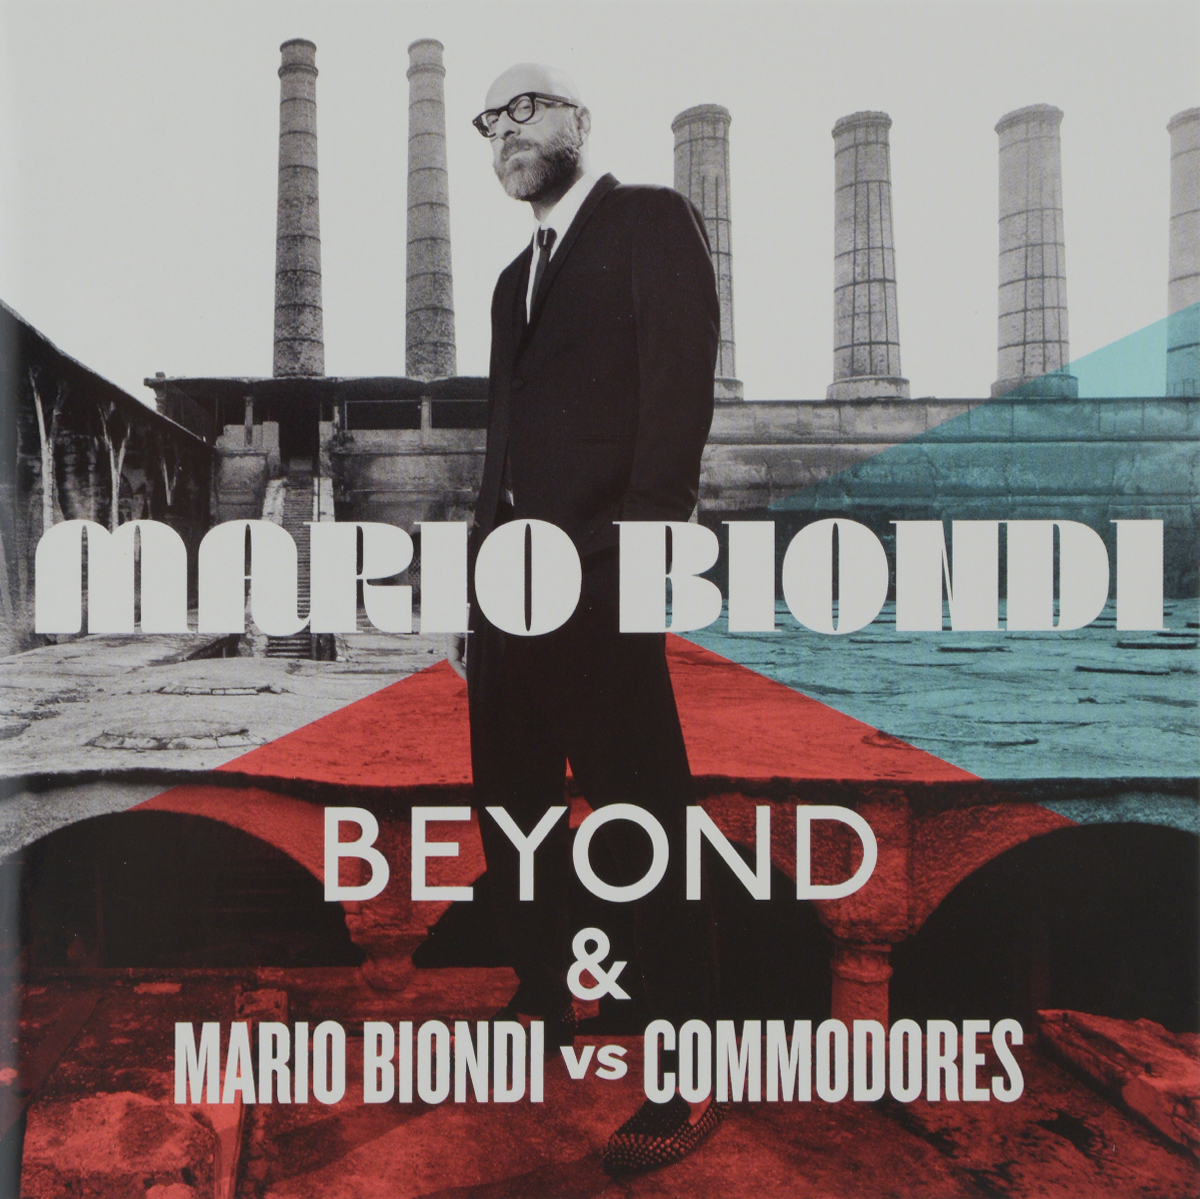 Марио Бионди,Commodores Mario Biondi Vs Commodores. Beyond босоножки lara biondi